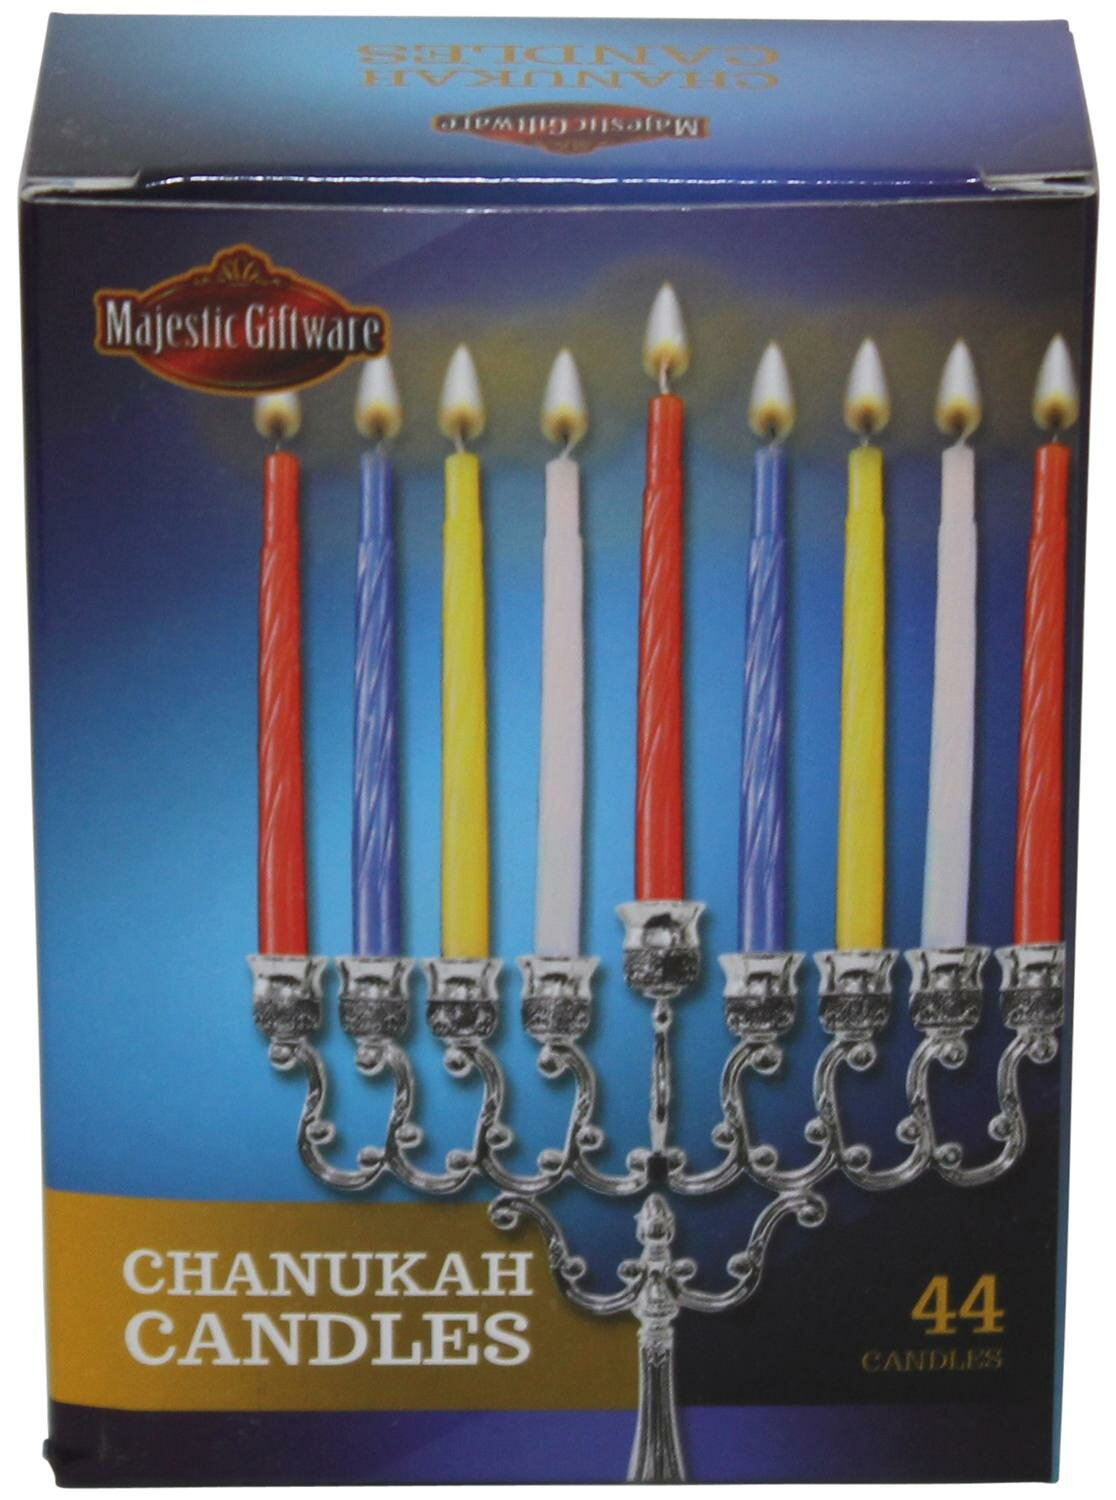 The Holiday Aisle Lamp Lighters Chanukah Candle Wayfair